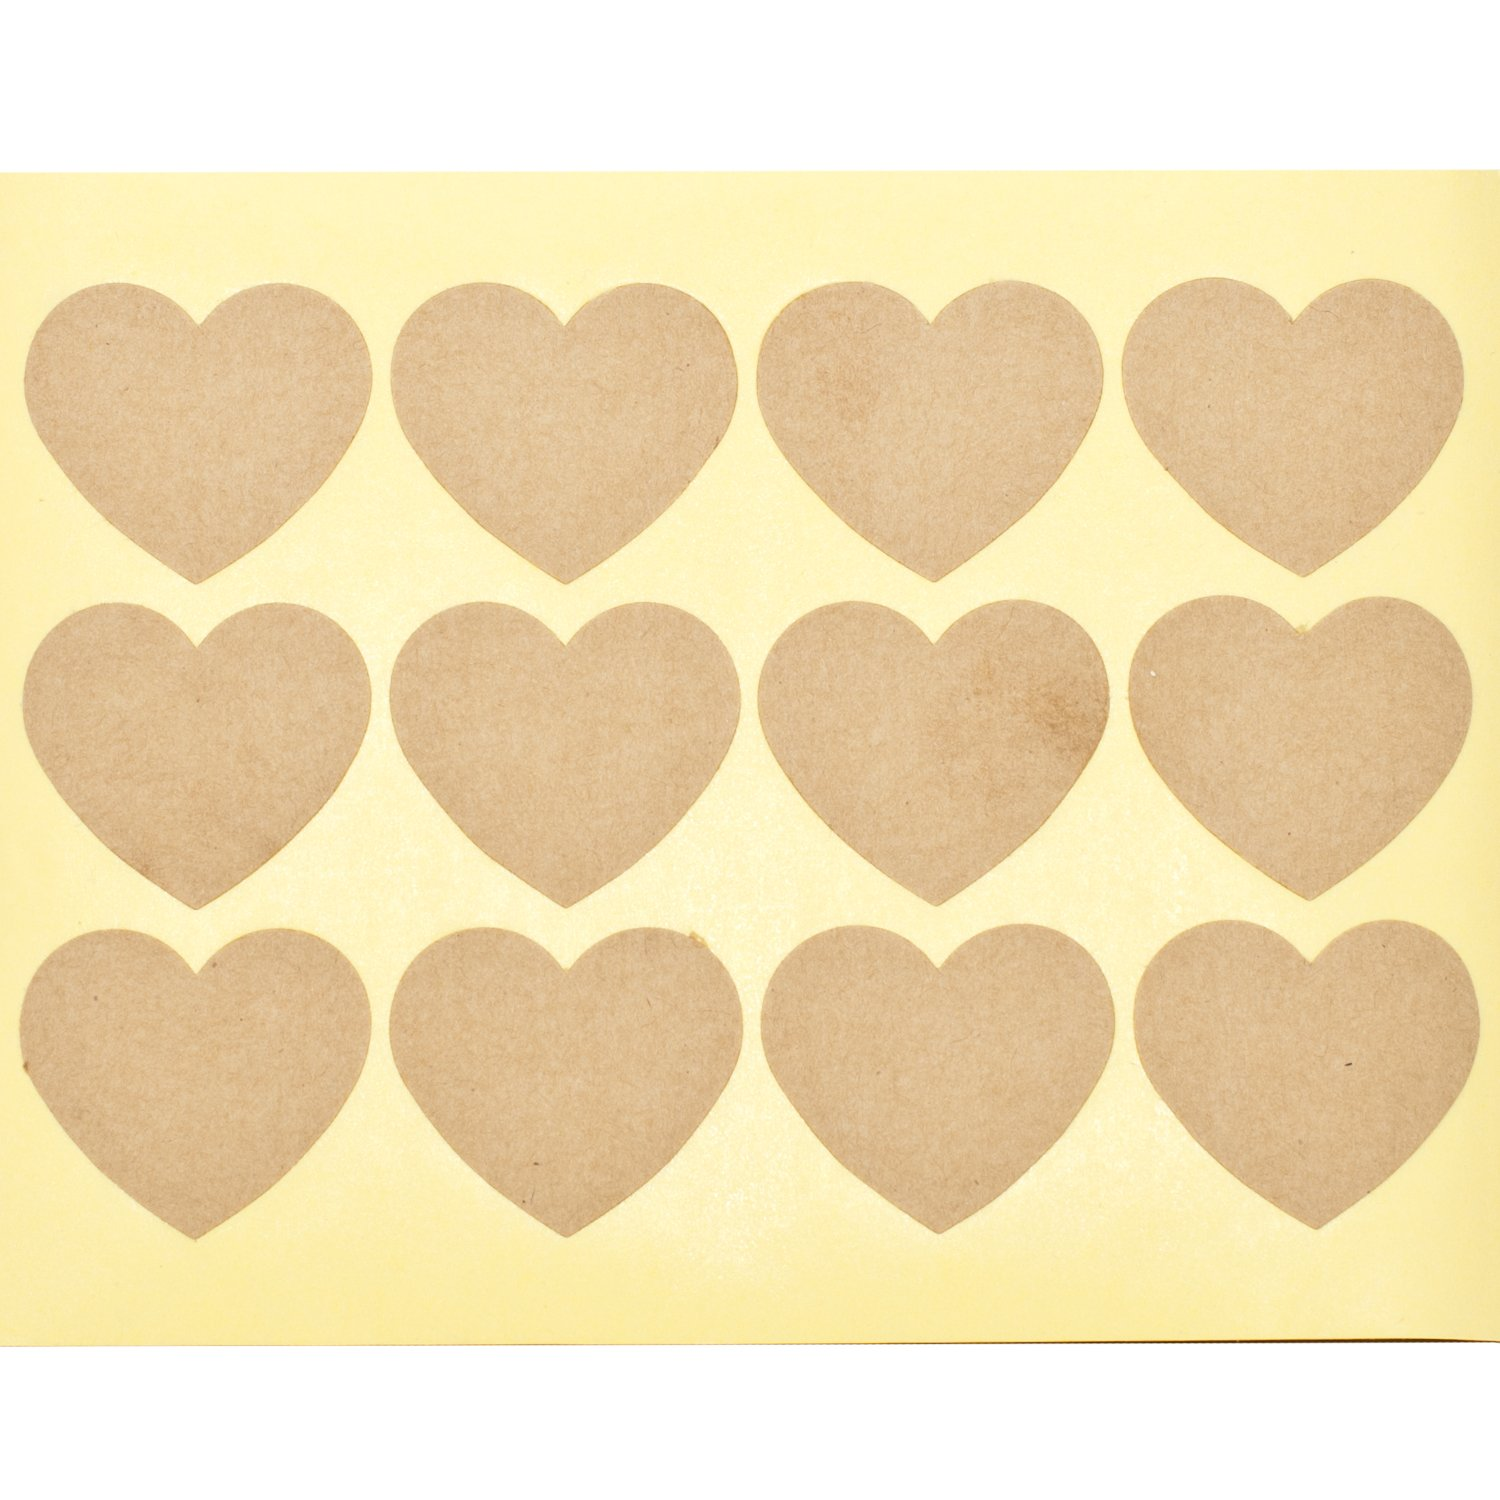 60 x Plain Kraft Heart Stickers Blank DIY Sticky Labels Pop-Tart